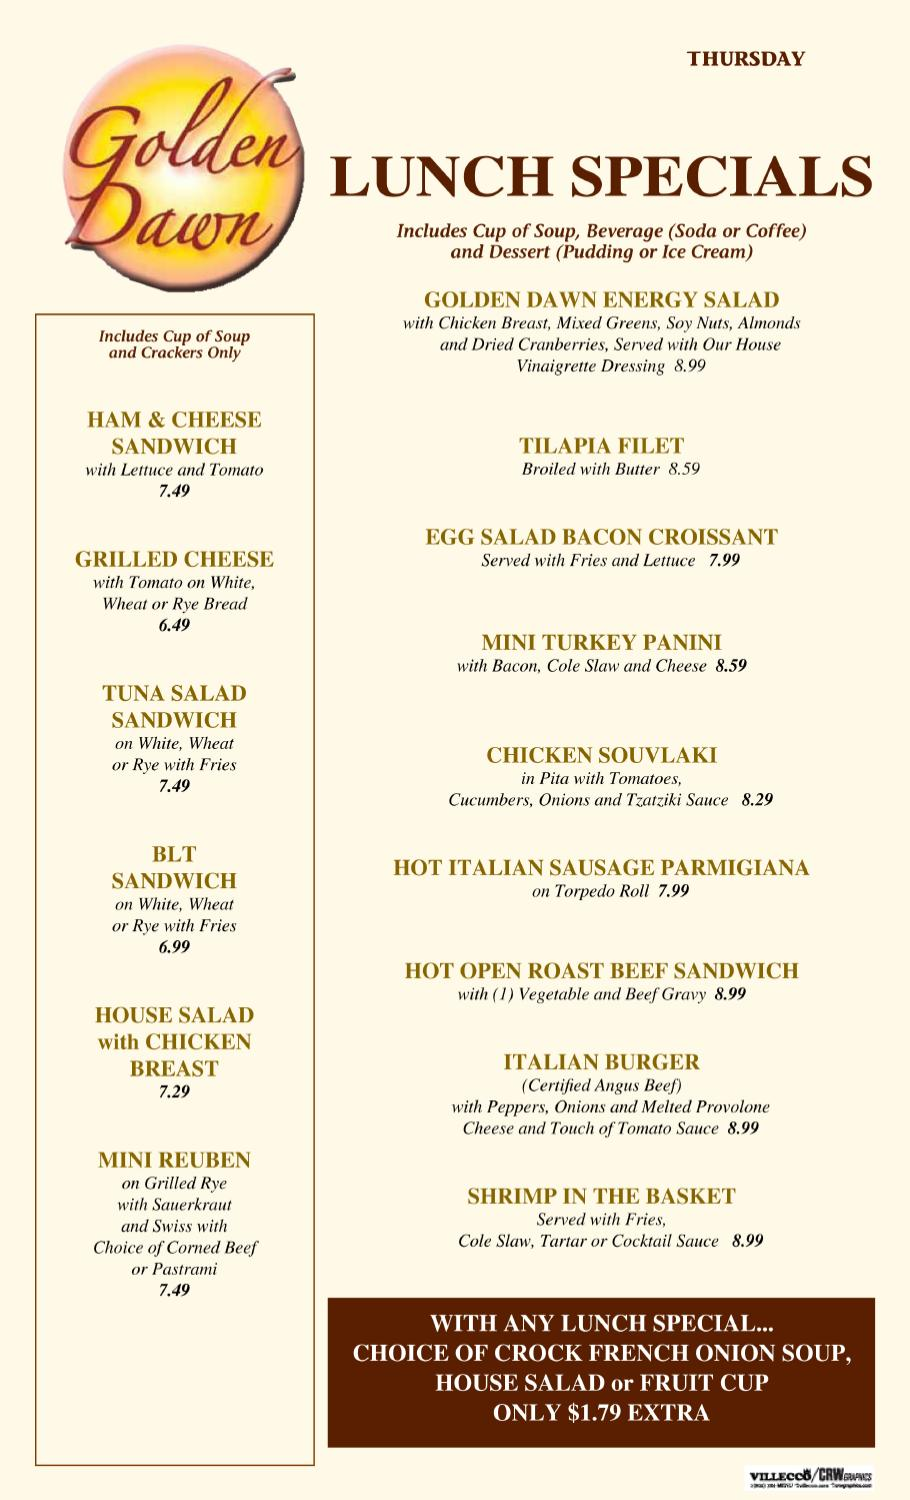 Thursday lunch special 1011 by issuu for Lunch specials